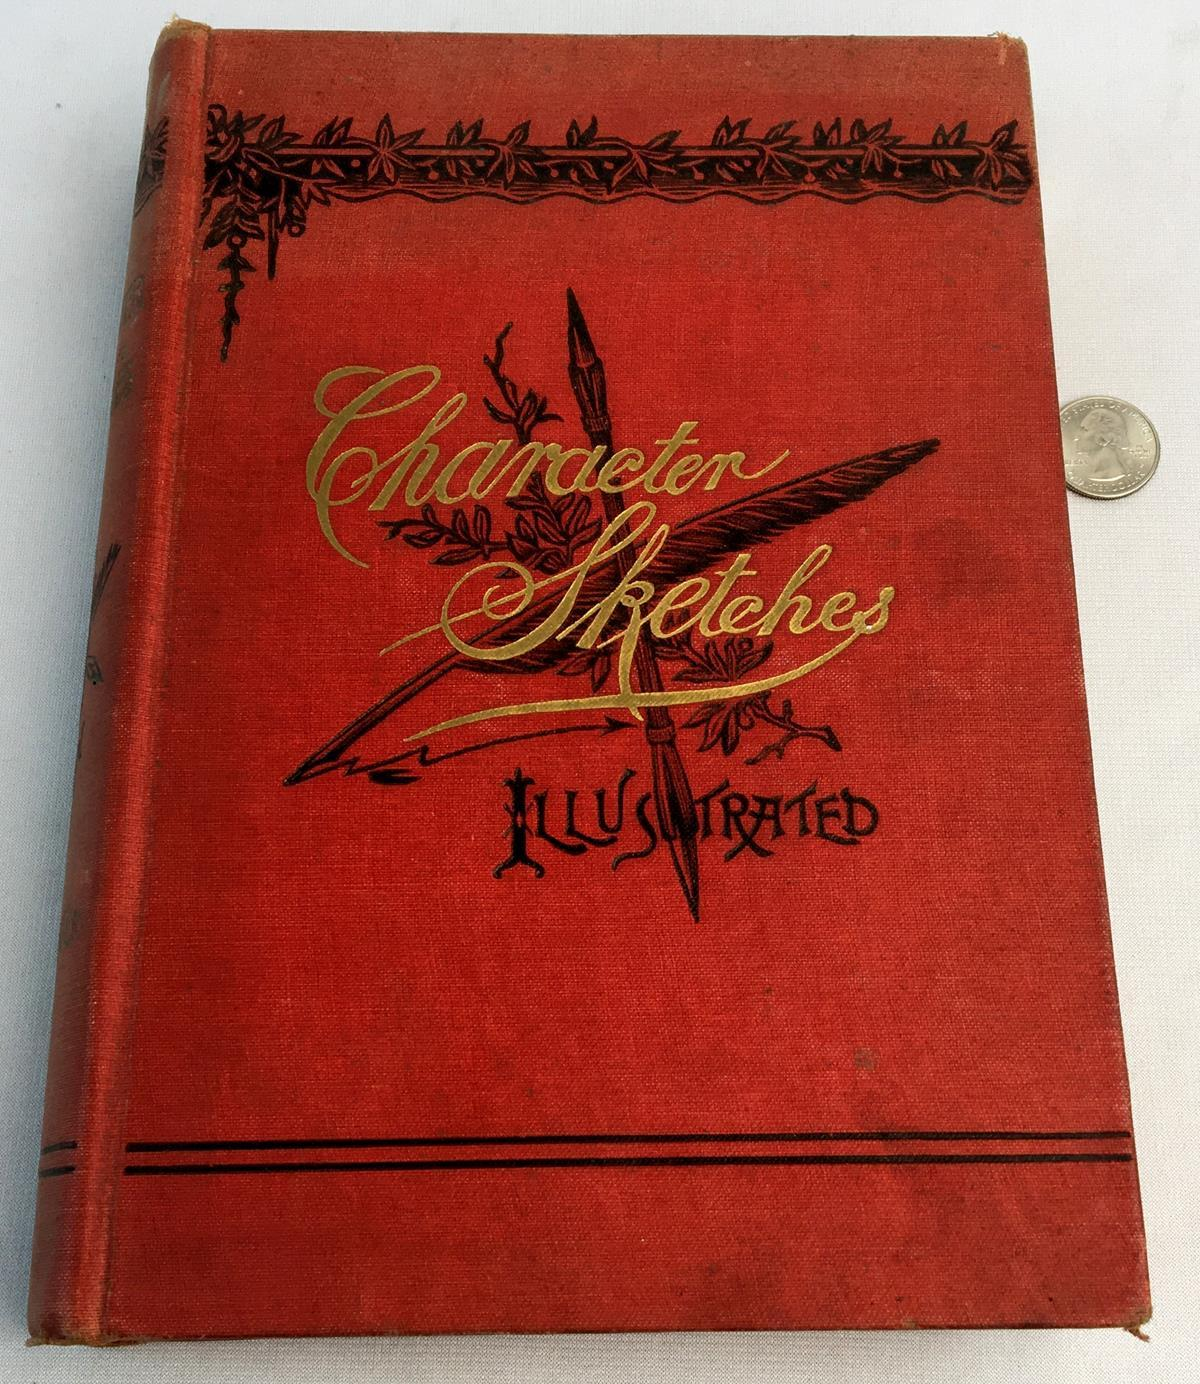 1898 Character Sketches by George A. Lofton, A.M., D.D. ILLUSTRATED